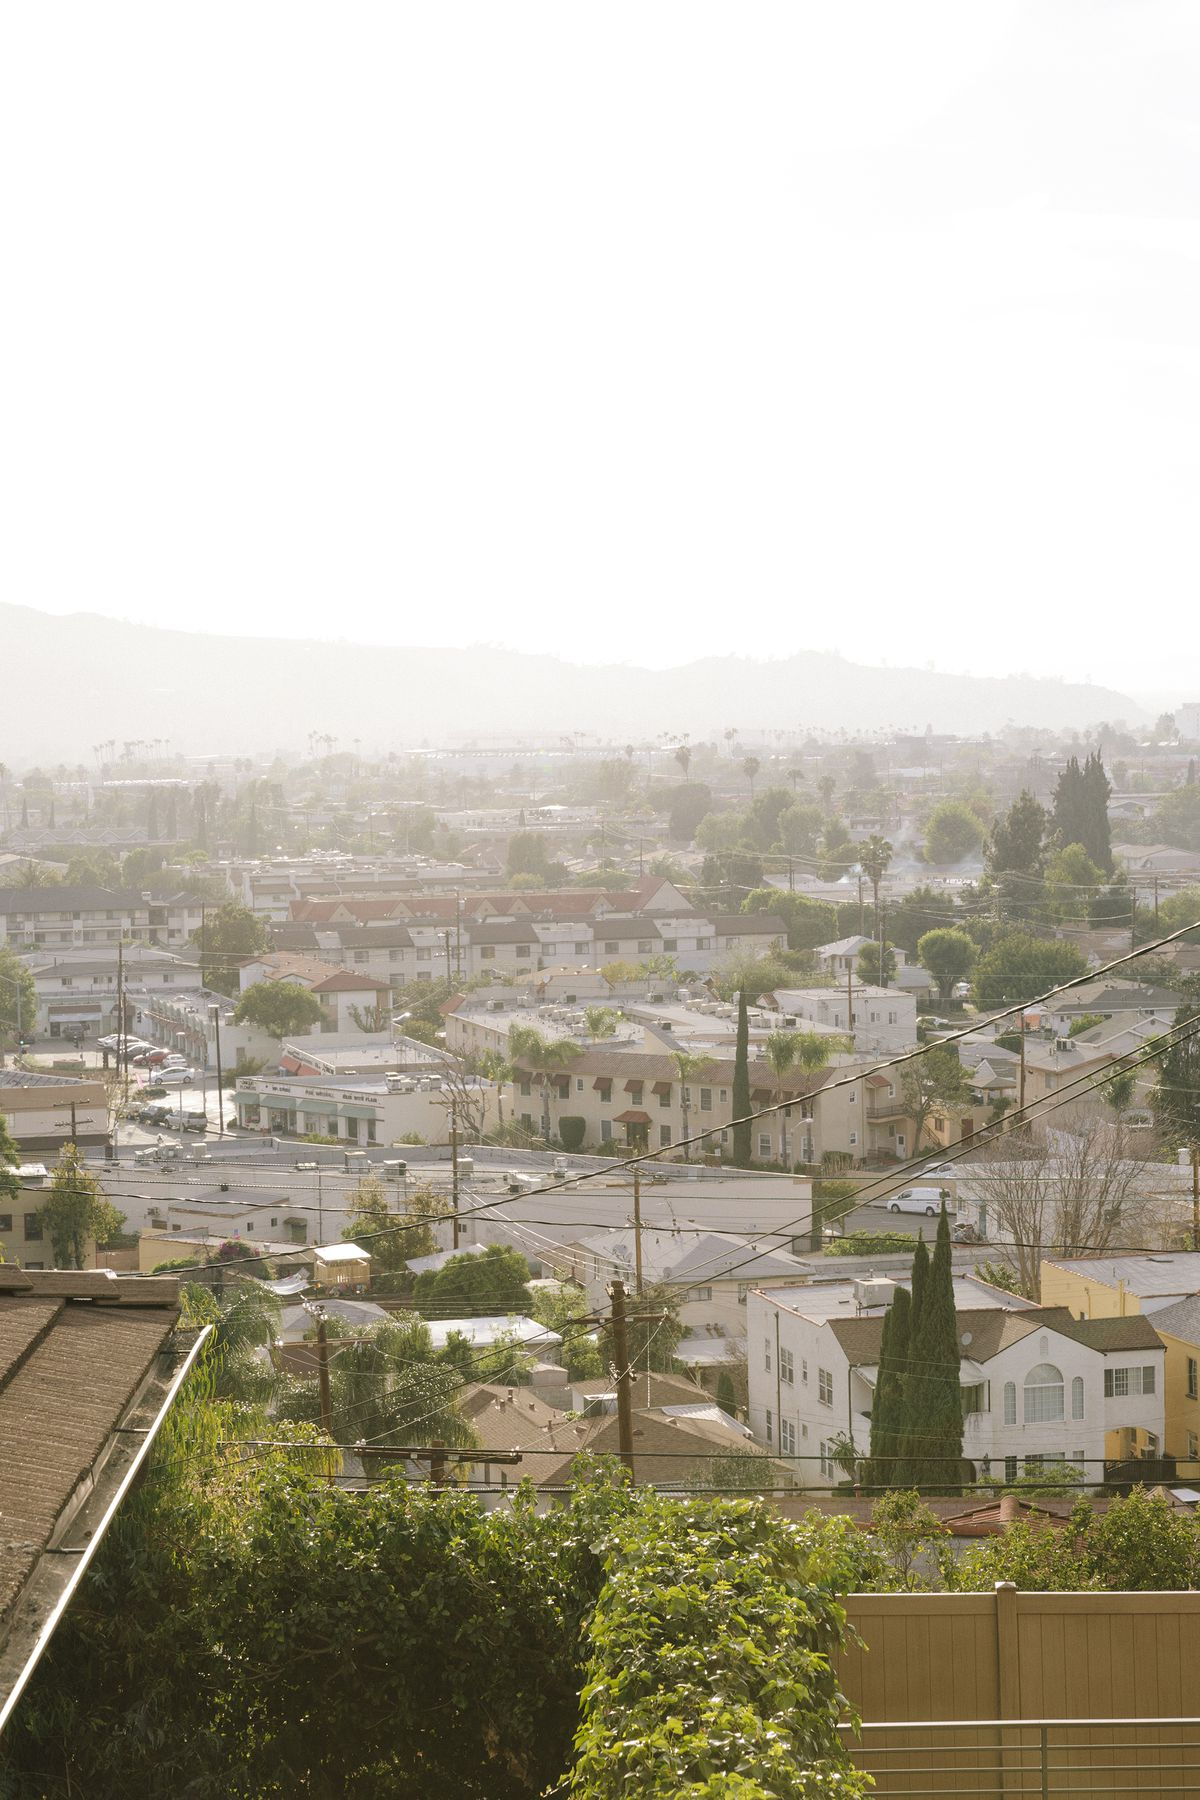 Aerial view of a dense city neighborhood populated with trees. Hills in the background.